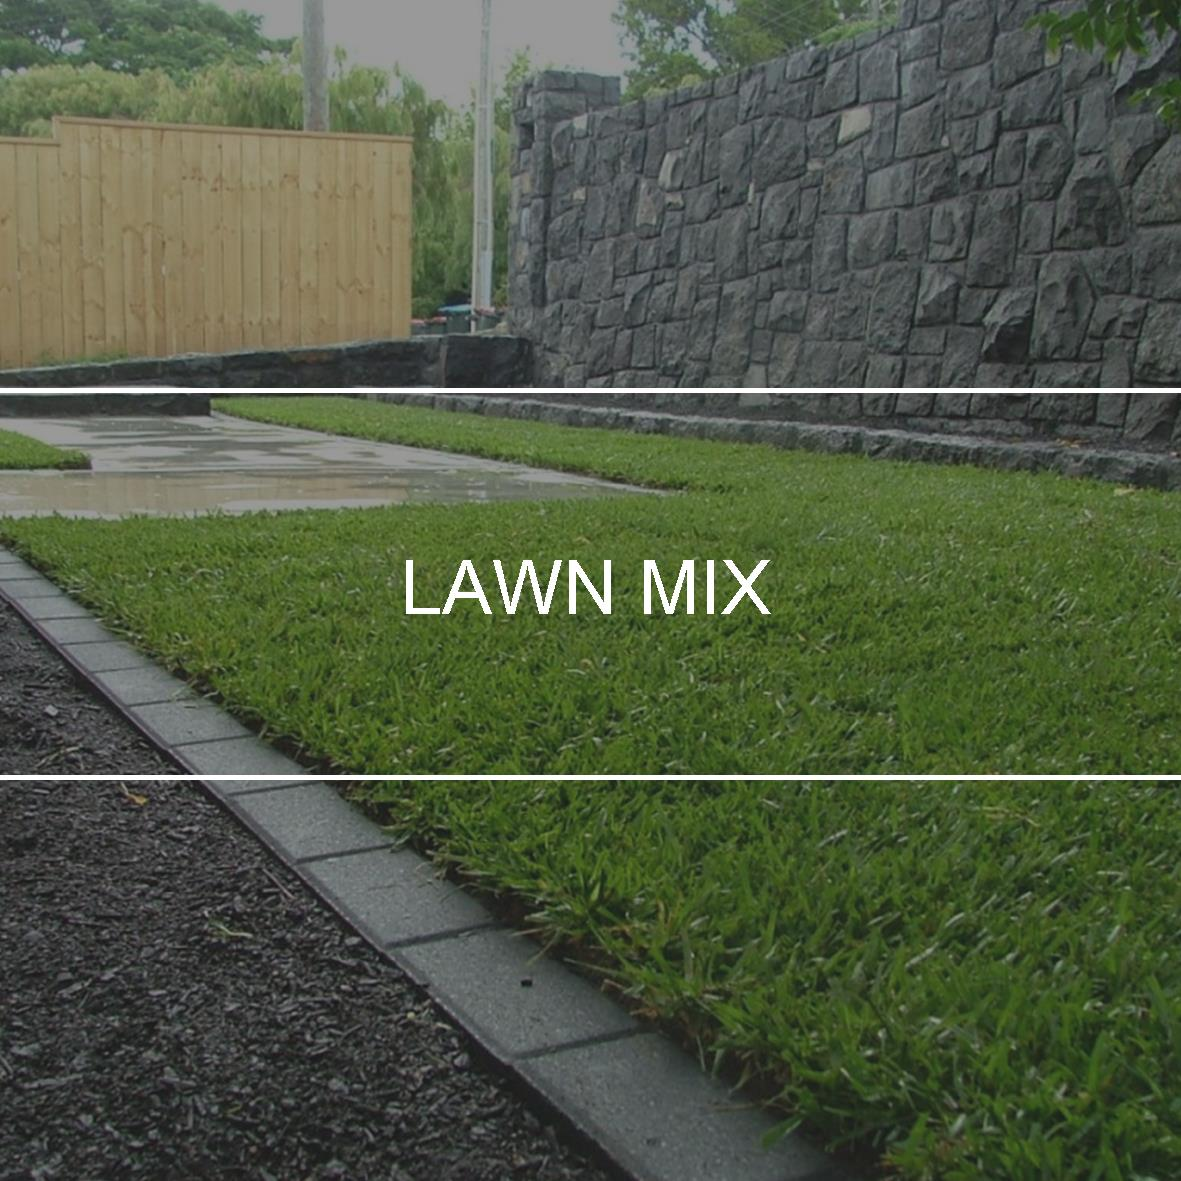 product_header_lawn mix